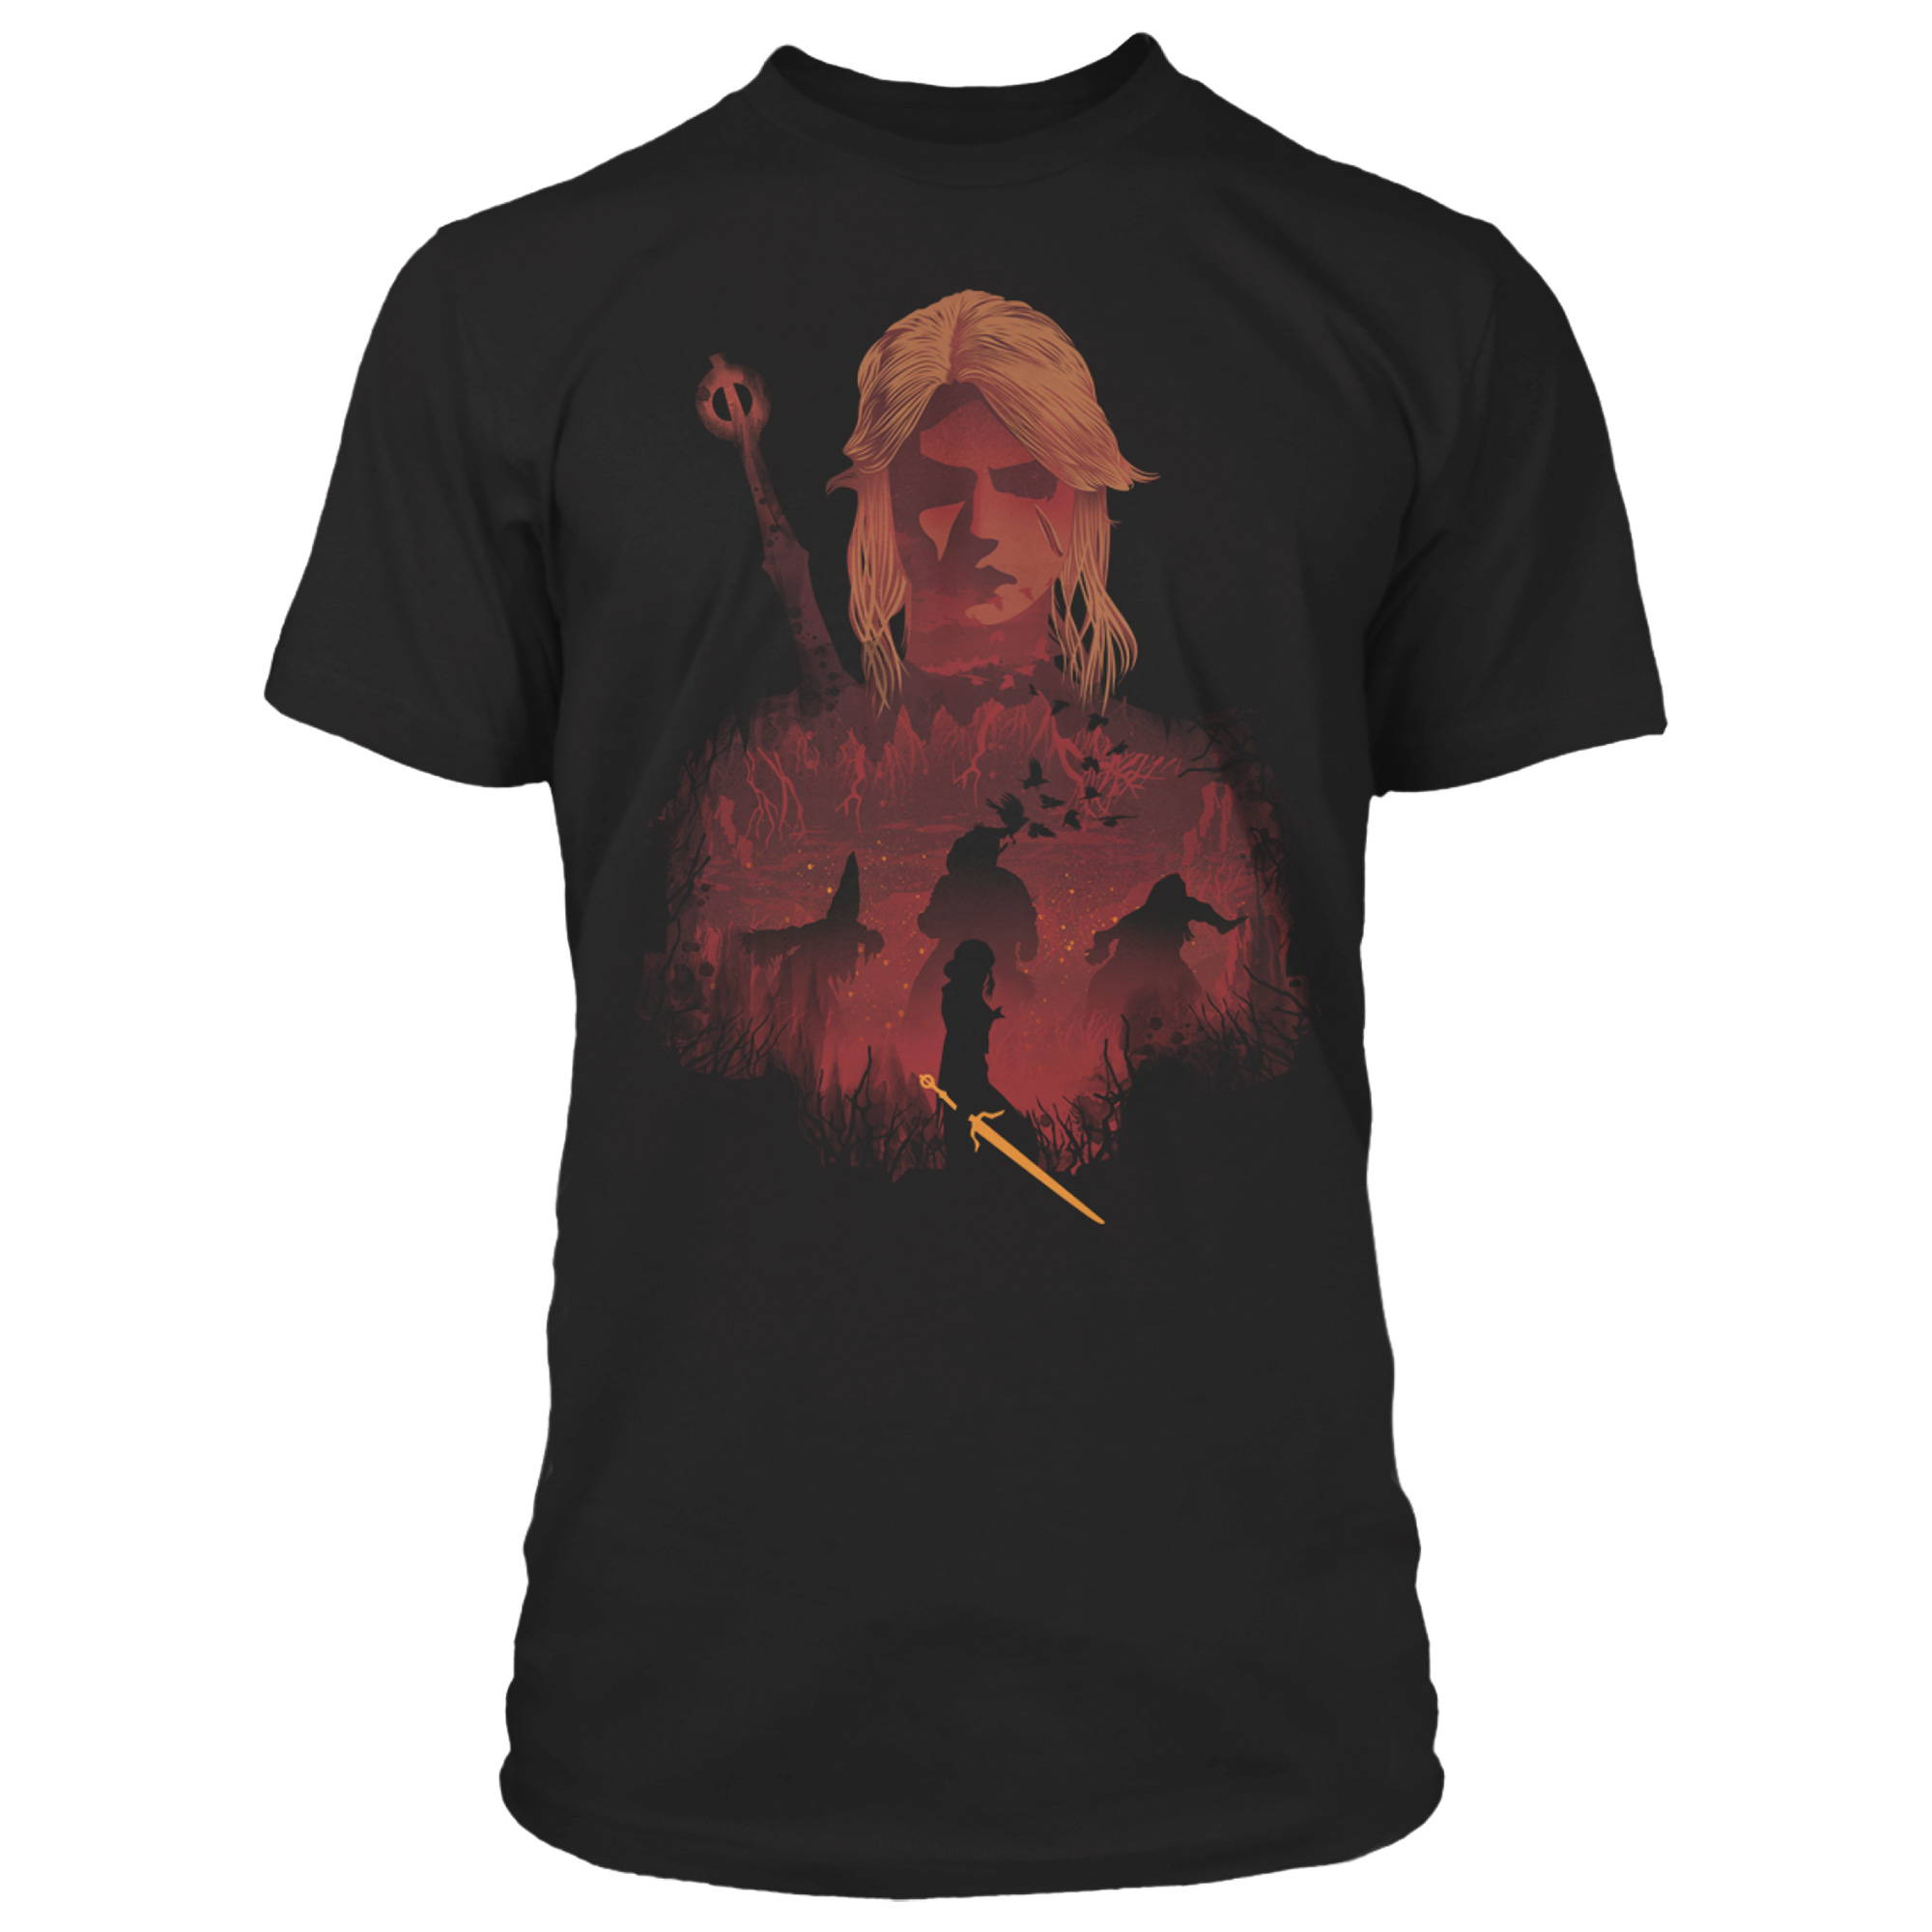 Product image of the The Witcher 3 Ciri and Crones Premium Tee